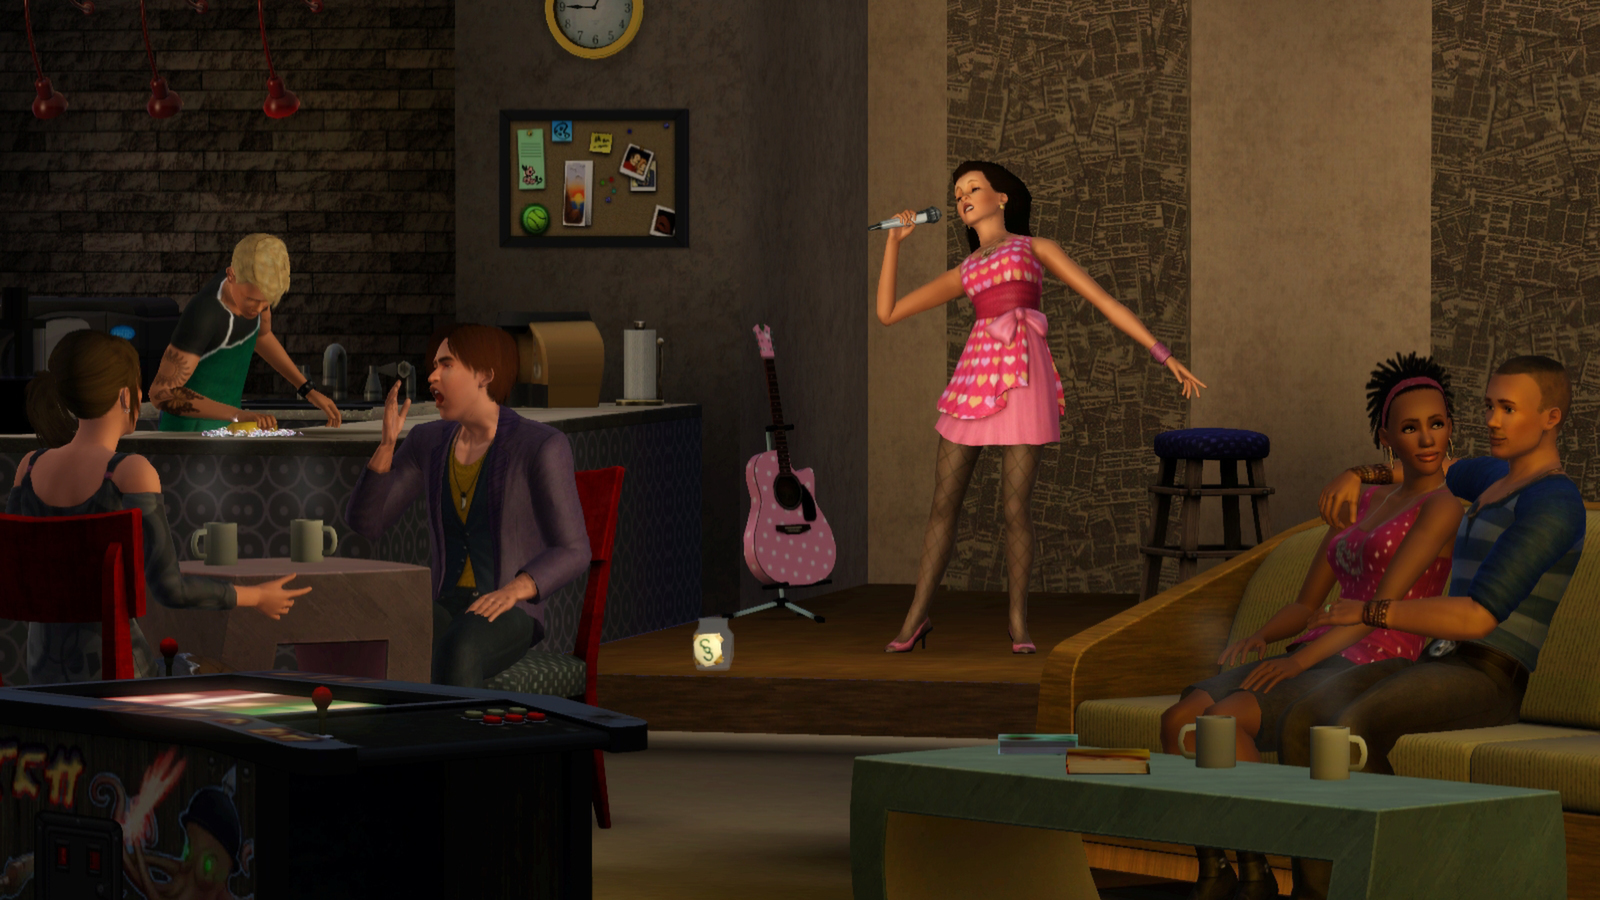 how to download riverview sims 3 from steam